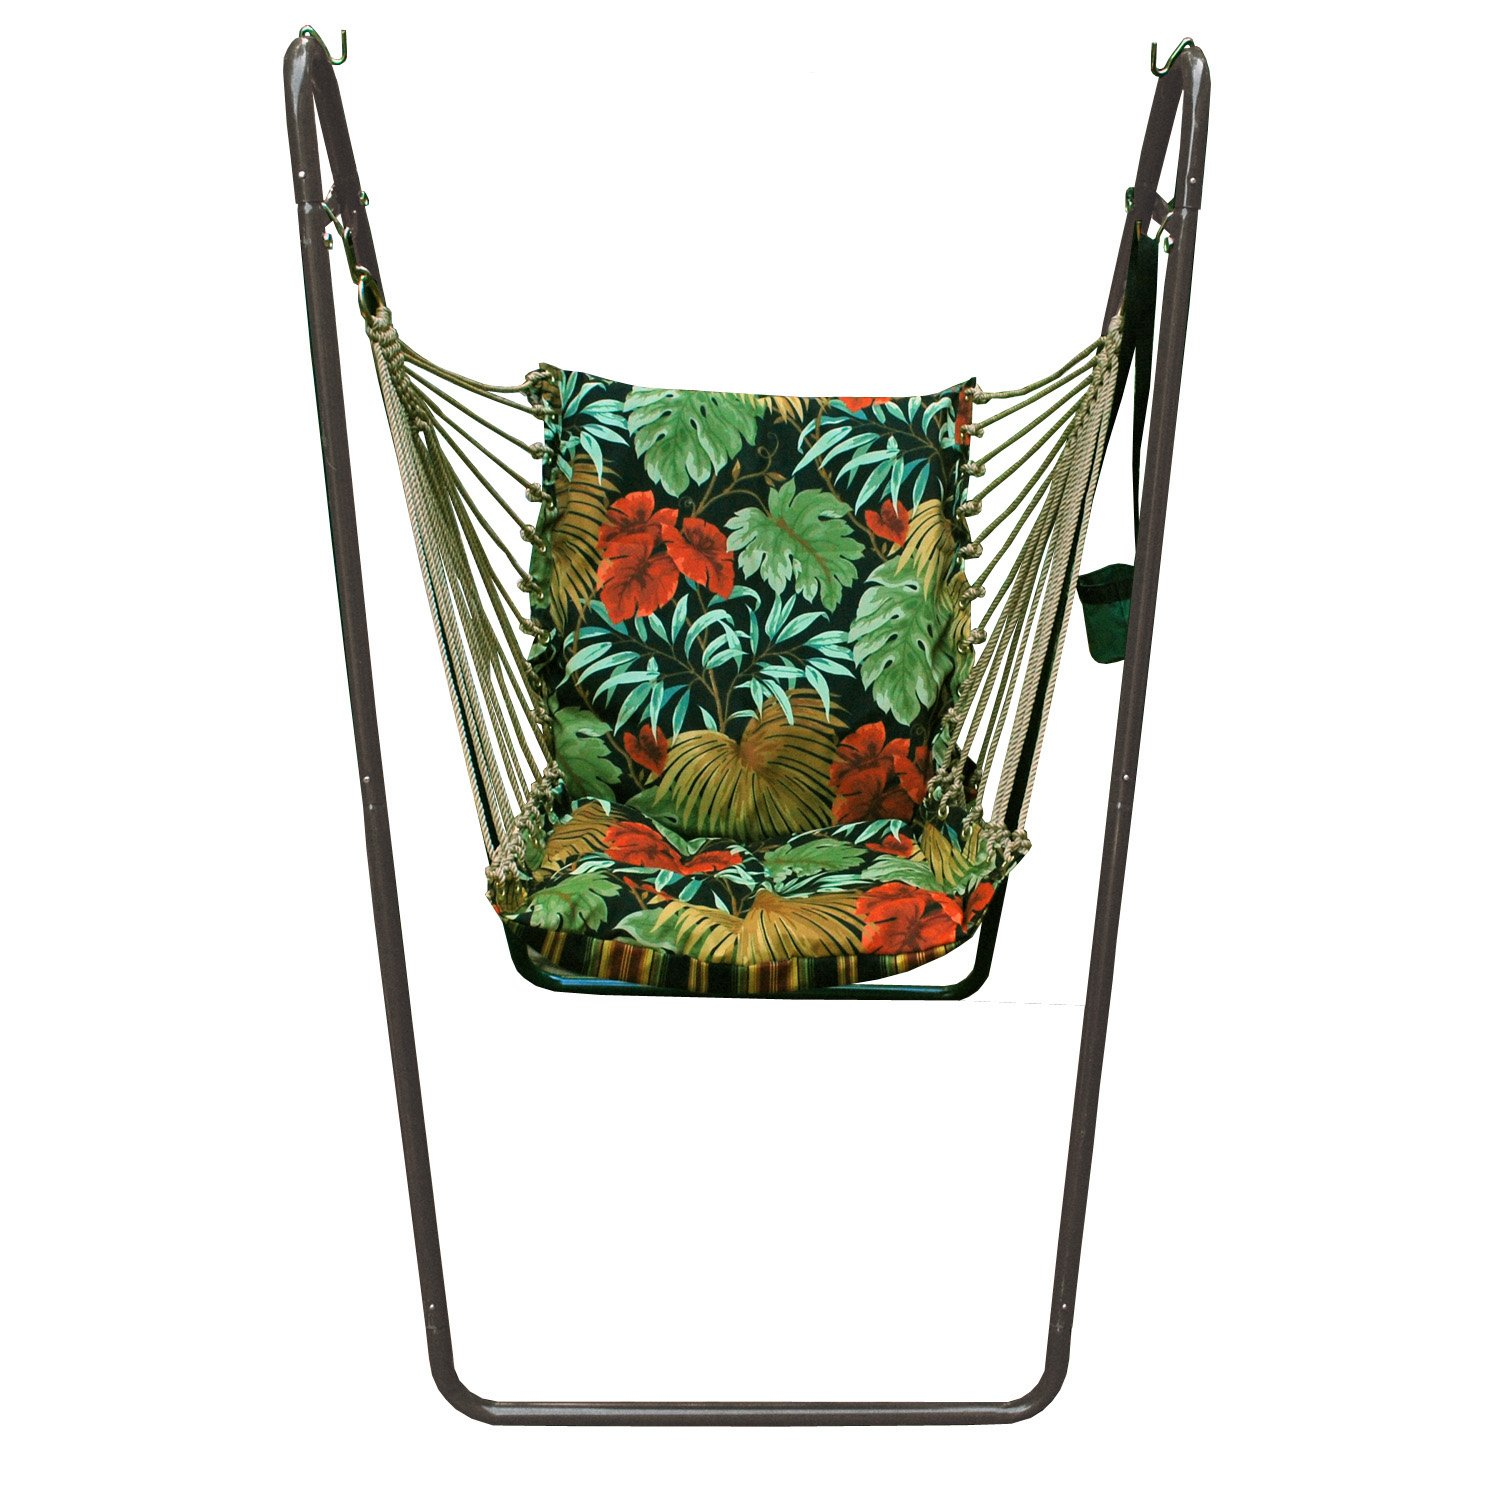 amazon     algoma 1525 6683br swing chair  bination with brass colored stand   camping chairs   garden  u0026 outdoor amazon     algoma 1525 6683br swing chair  bination with brass      rh   amazon